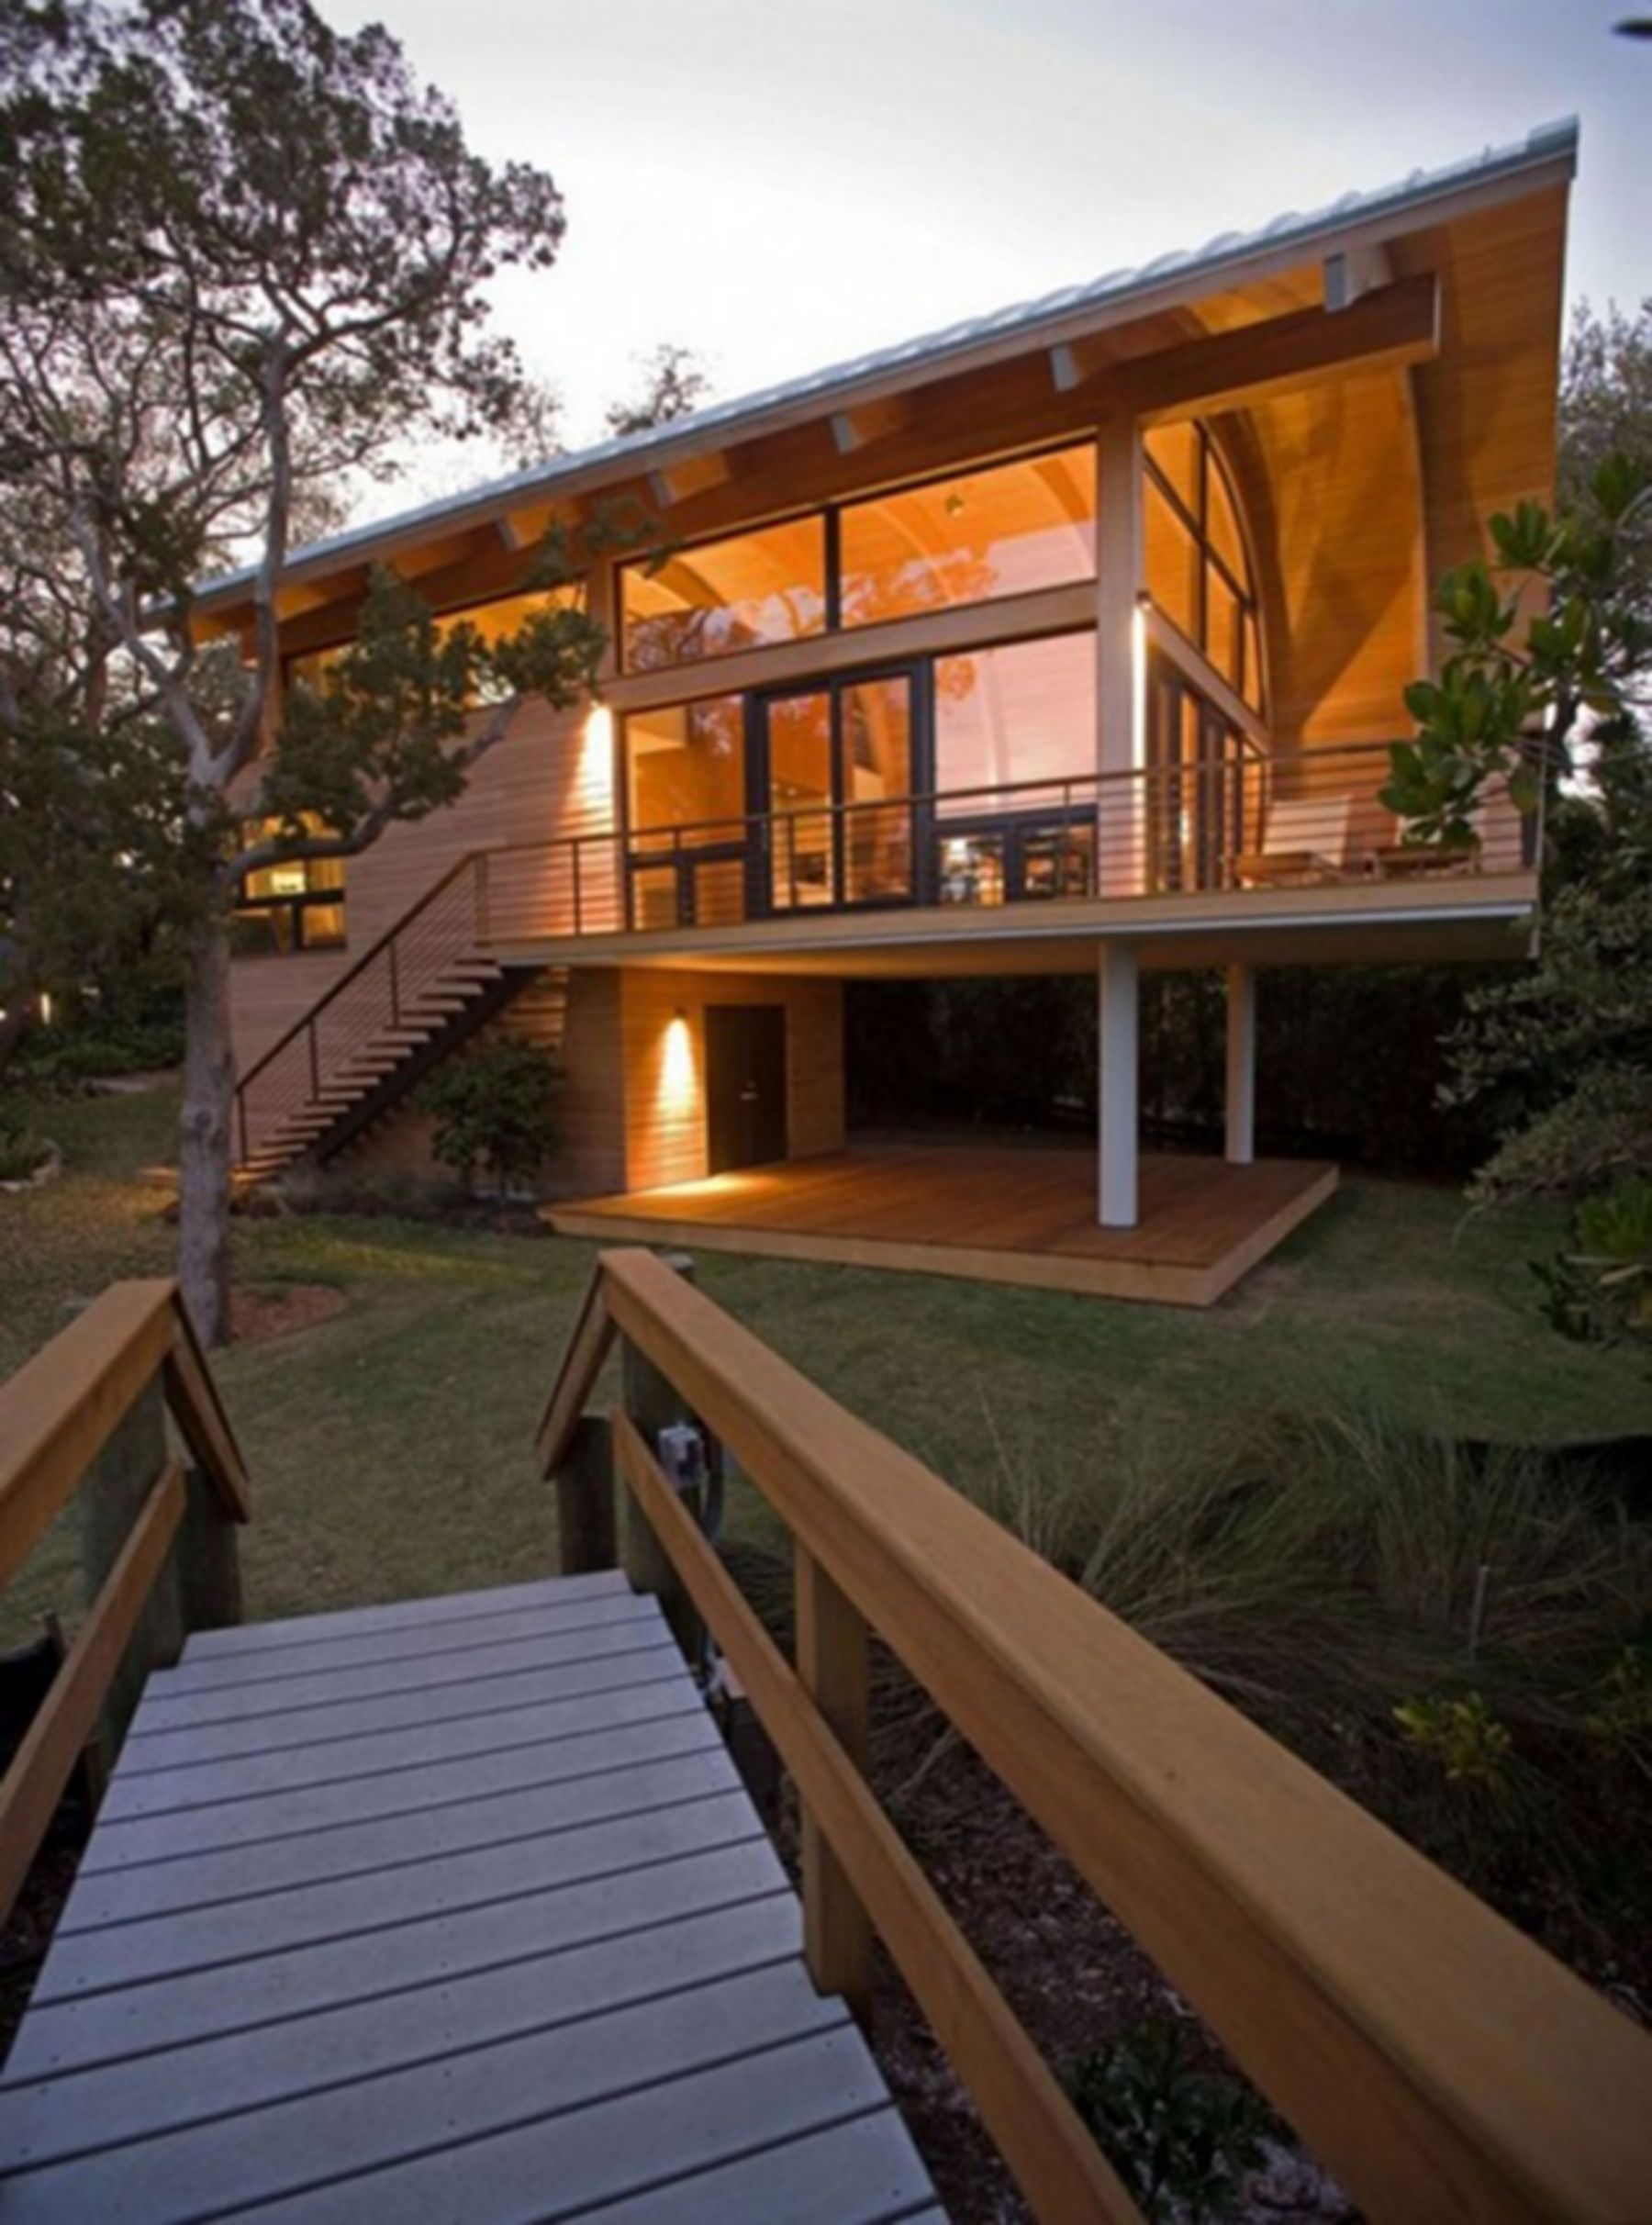 10 Most Beautiful Wooden House Design